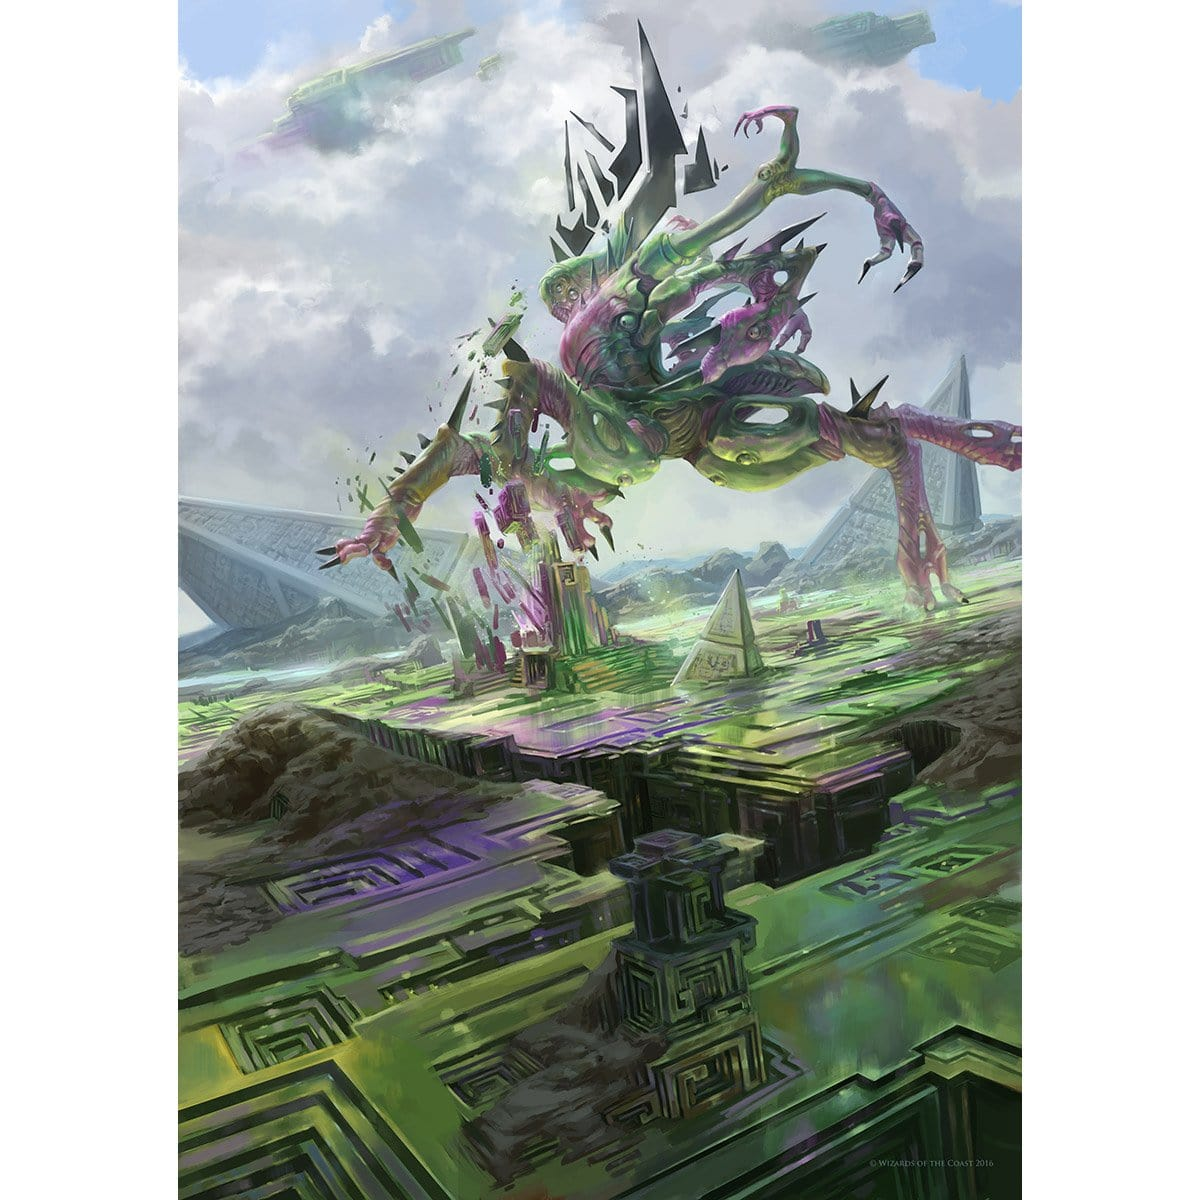 Reality Smasher Print - Print - Original Magic Art - Accessories for Magic the Gathering and other card games